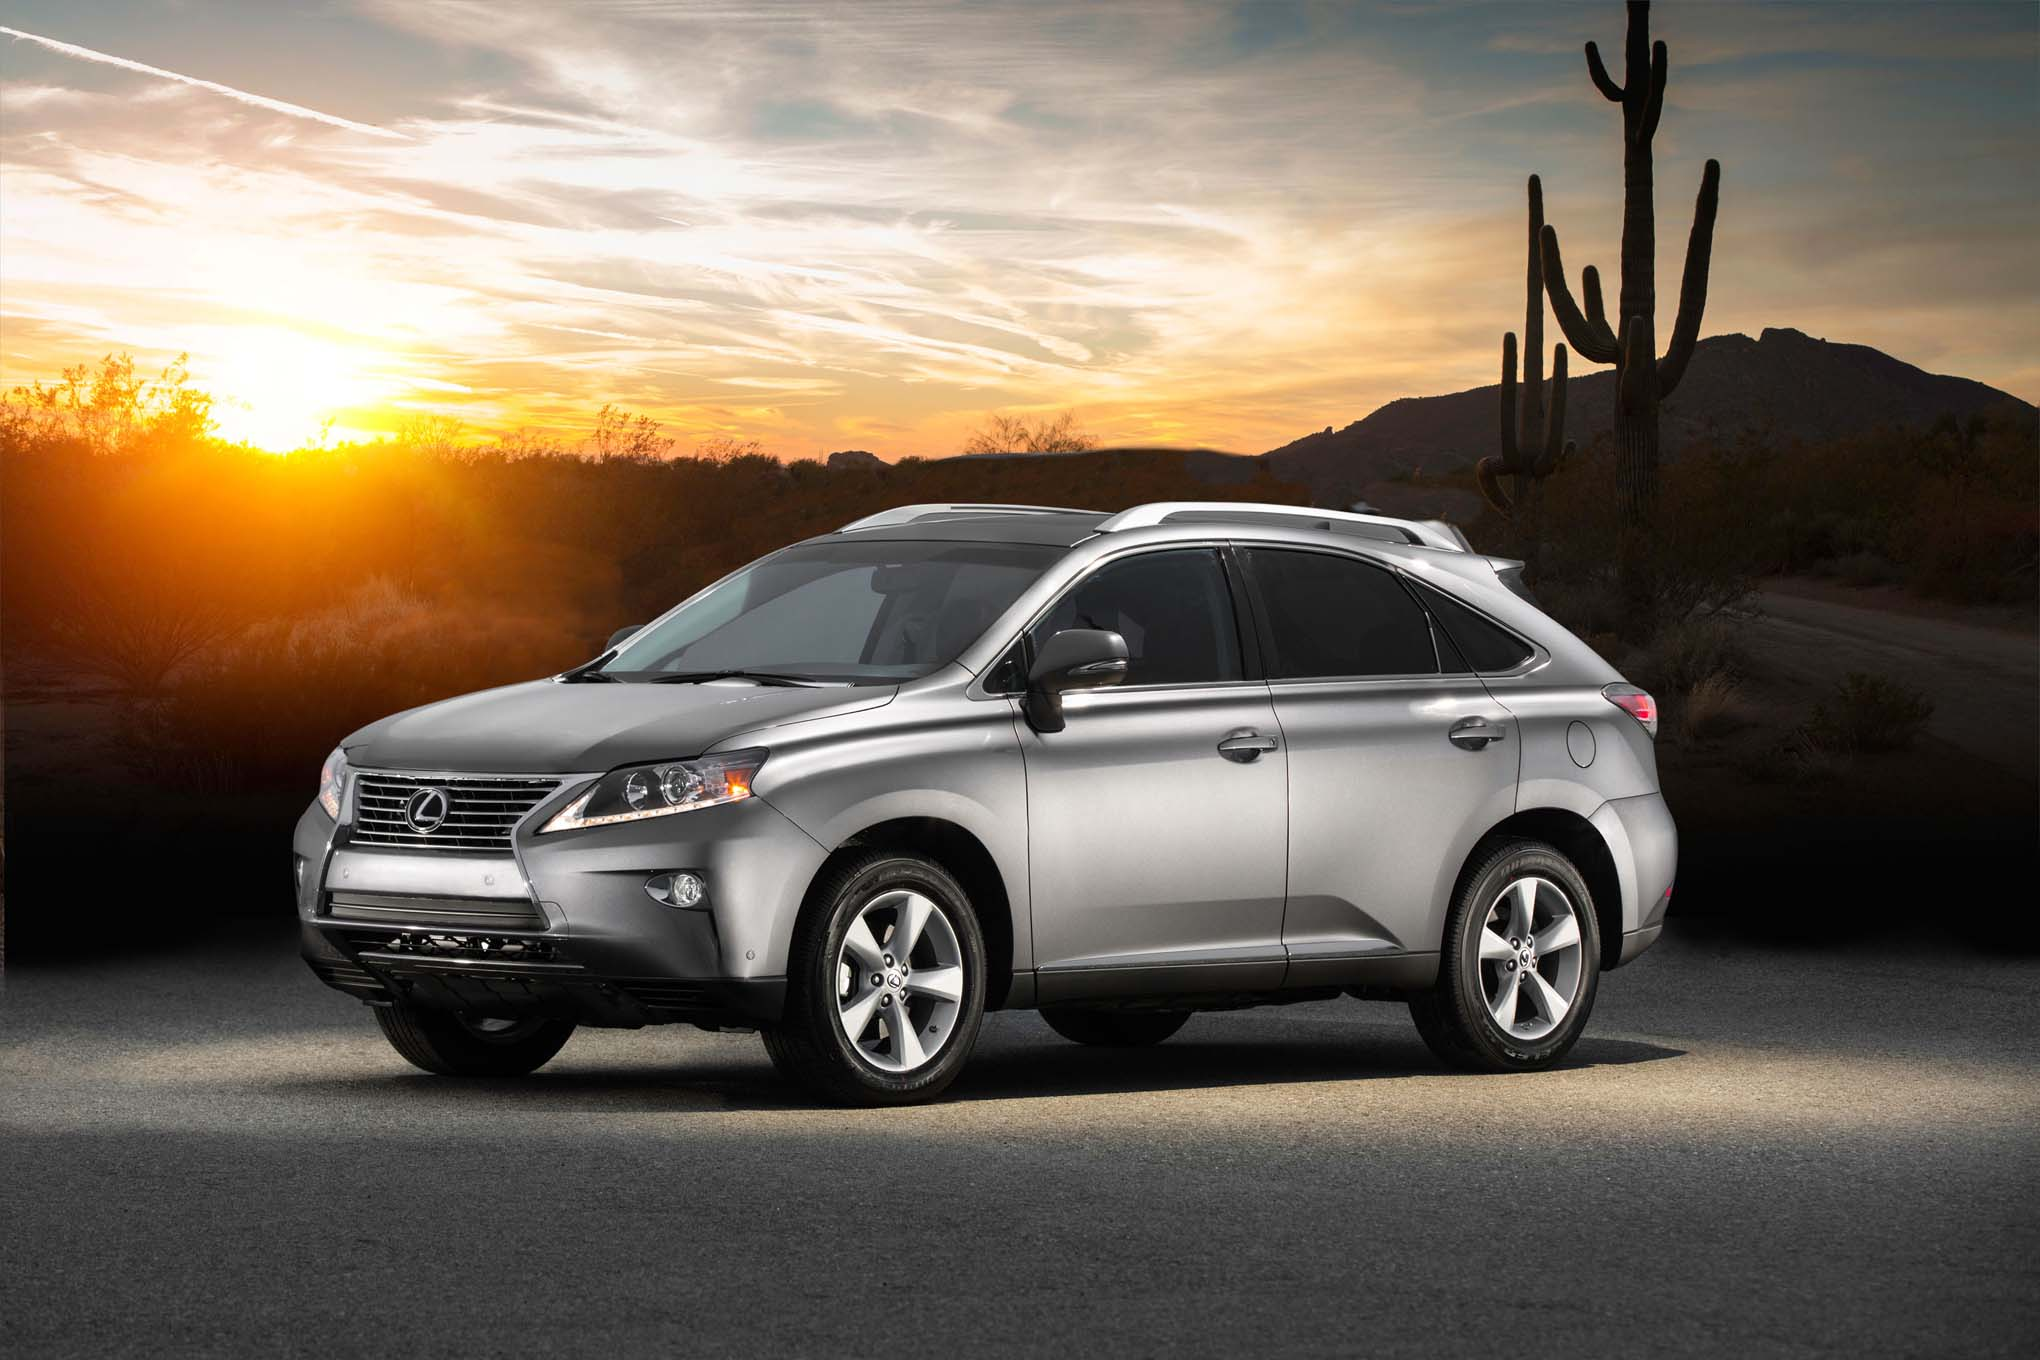 2015 Lexus RX 350, RX 450h Get Minor Updates